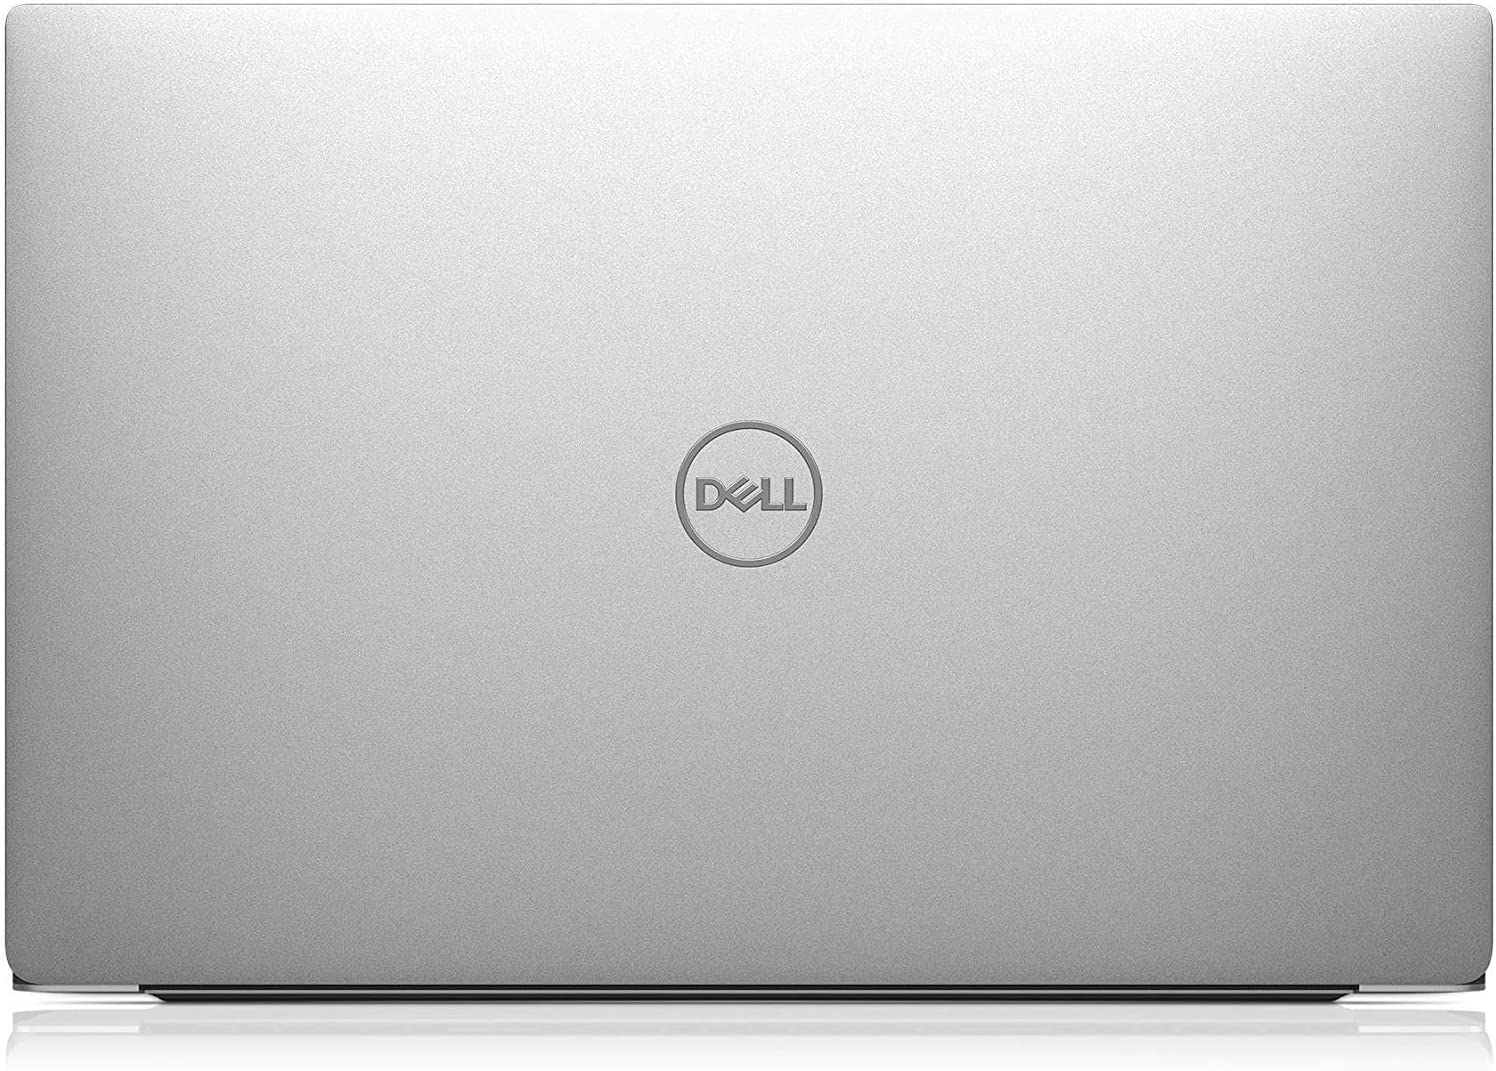 "Dell XPS 9570 Laptop (Intel i7-8750H 6-Core, 32GB RAM, 1TB PCIe SSD, NVIDIA GTX 1050 Ti, 15.6"" Touch 4K UHD (3840x2160), WiFi, Bluetooth, Webcam, 2xUSB 3.1, 1xHDMI, Backlit Keyboard, Win 10 Pro)"